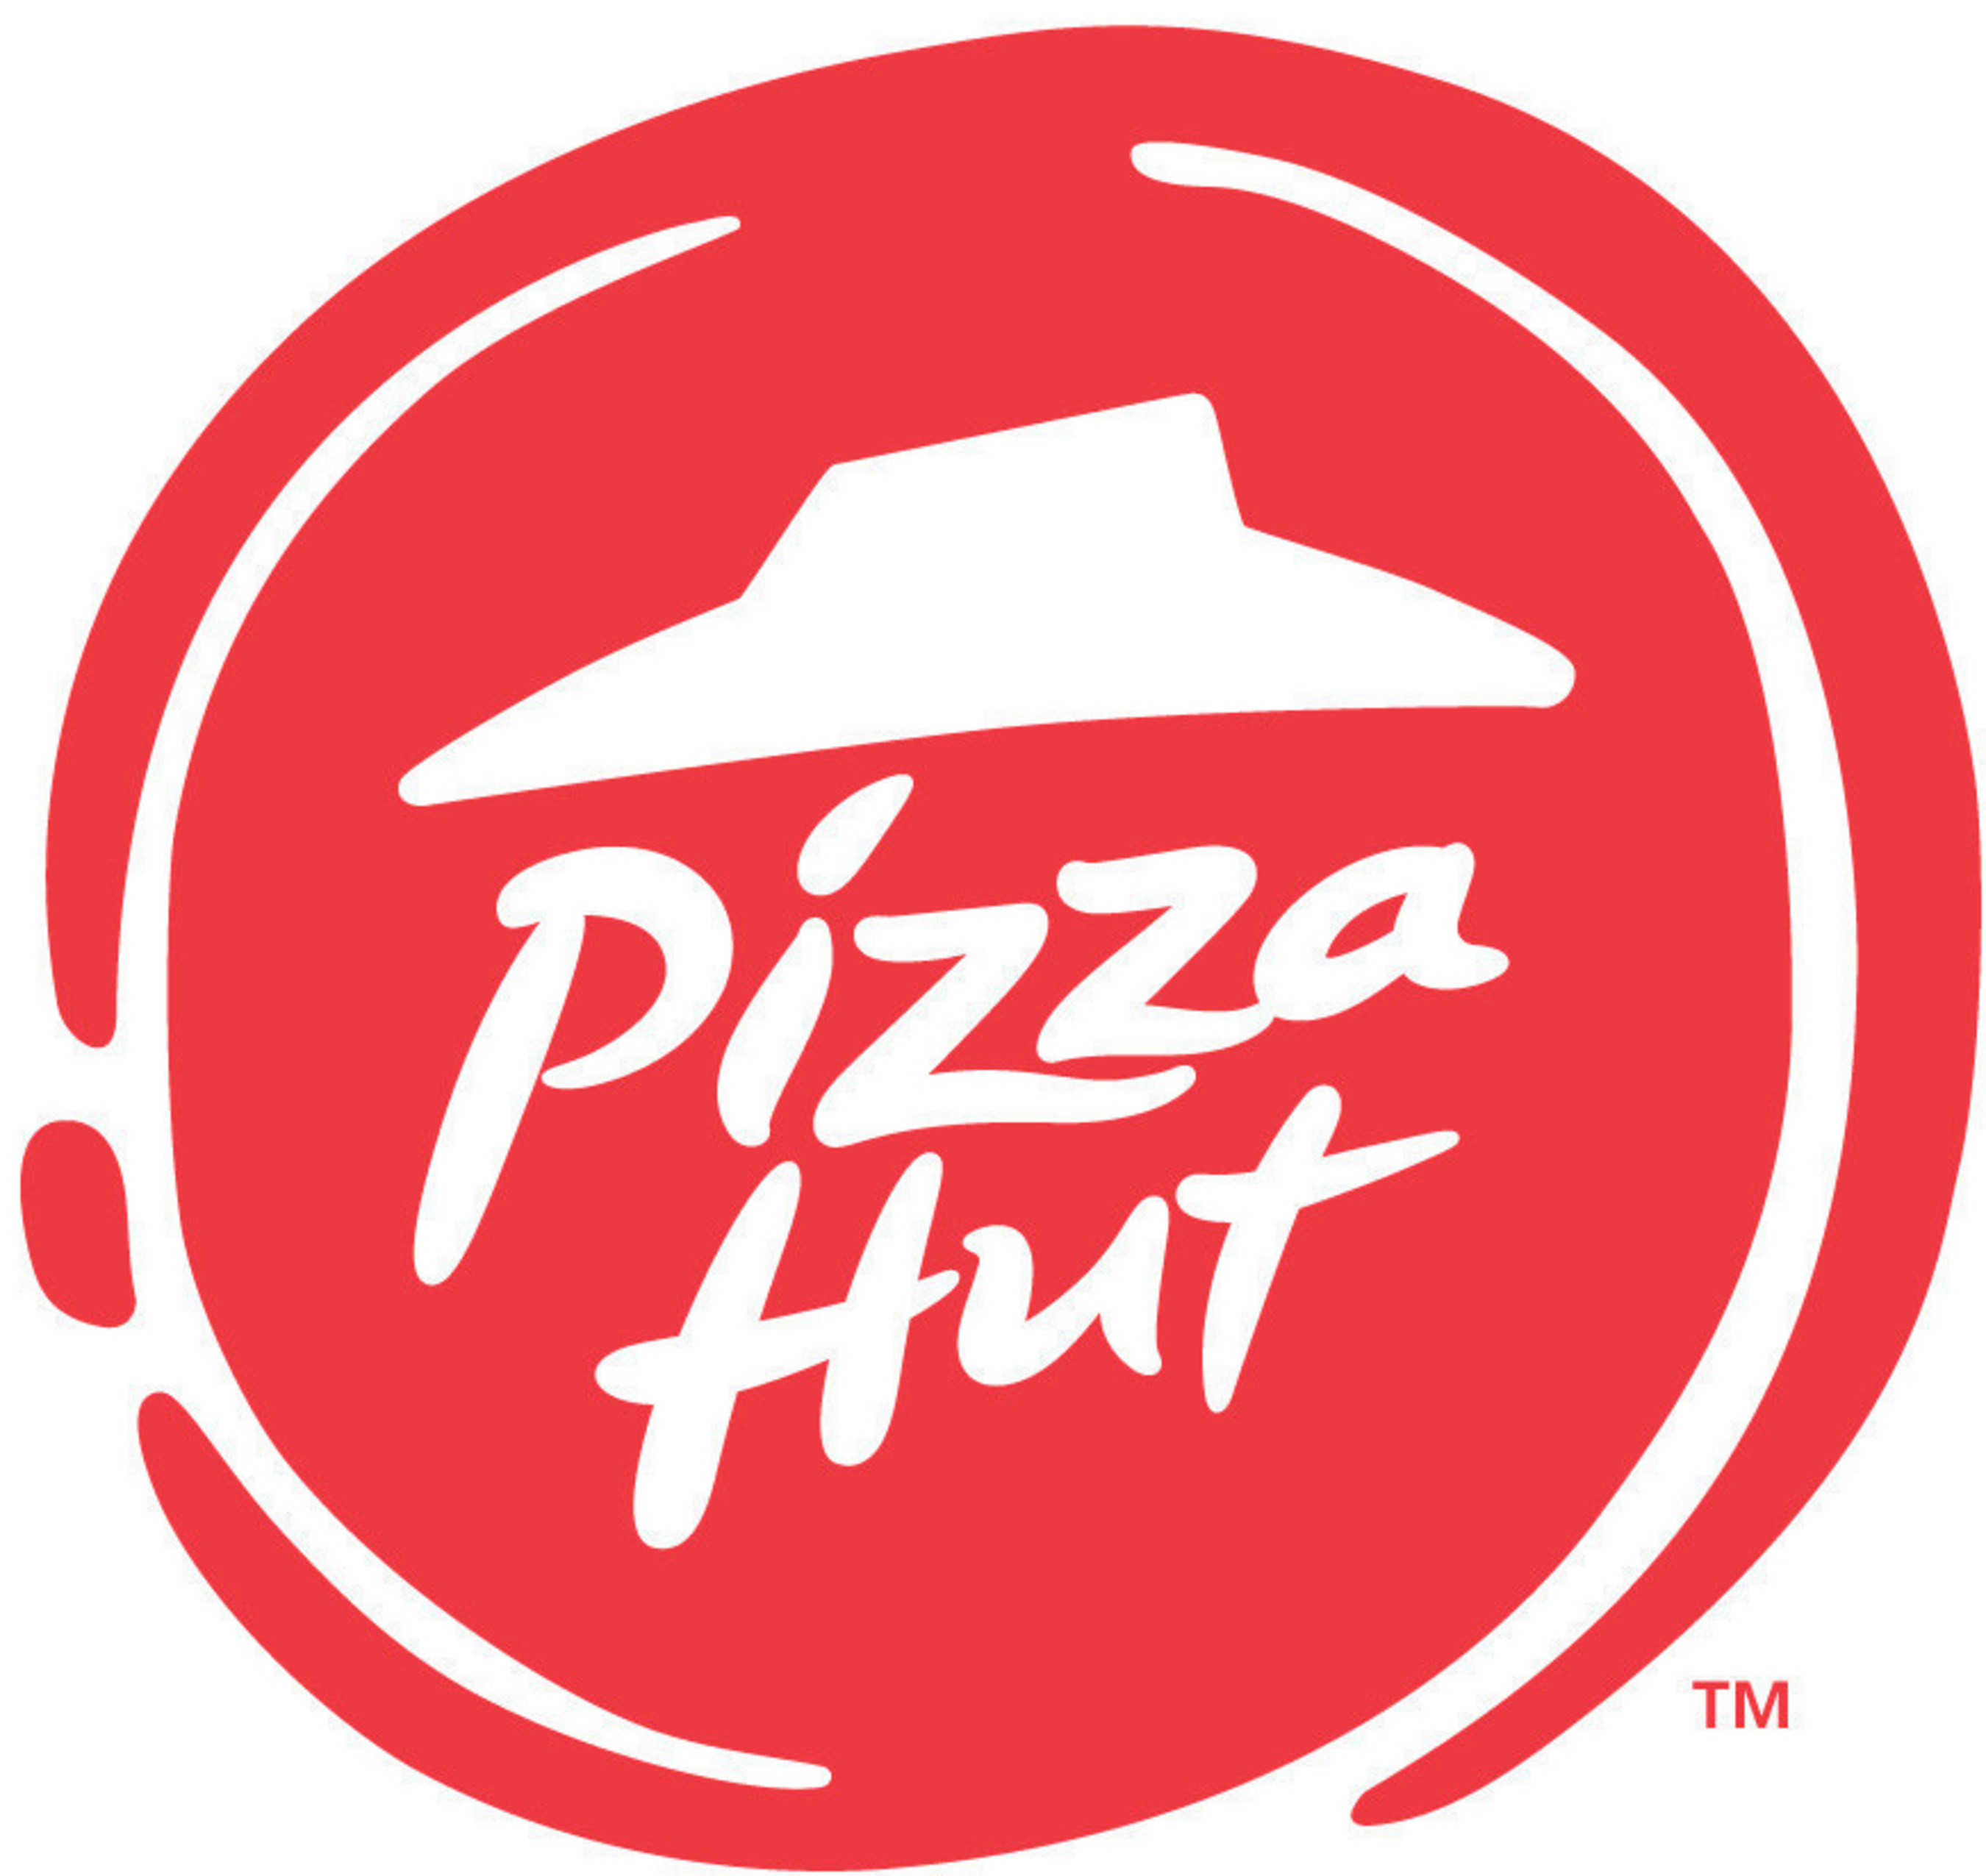 Beginning Jan. 4, the Pizza Hut new menu features seven items, including pizza, WingStreet(R) Wings, Hershey's(R) desserts, Tuscani(R) pasta, signature sides, and Pepsi(R) beverages, for $5 each when ordering two or more